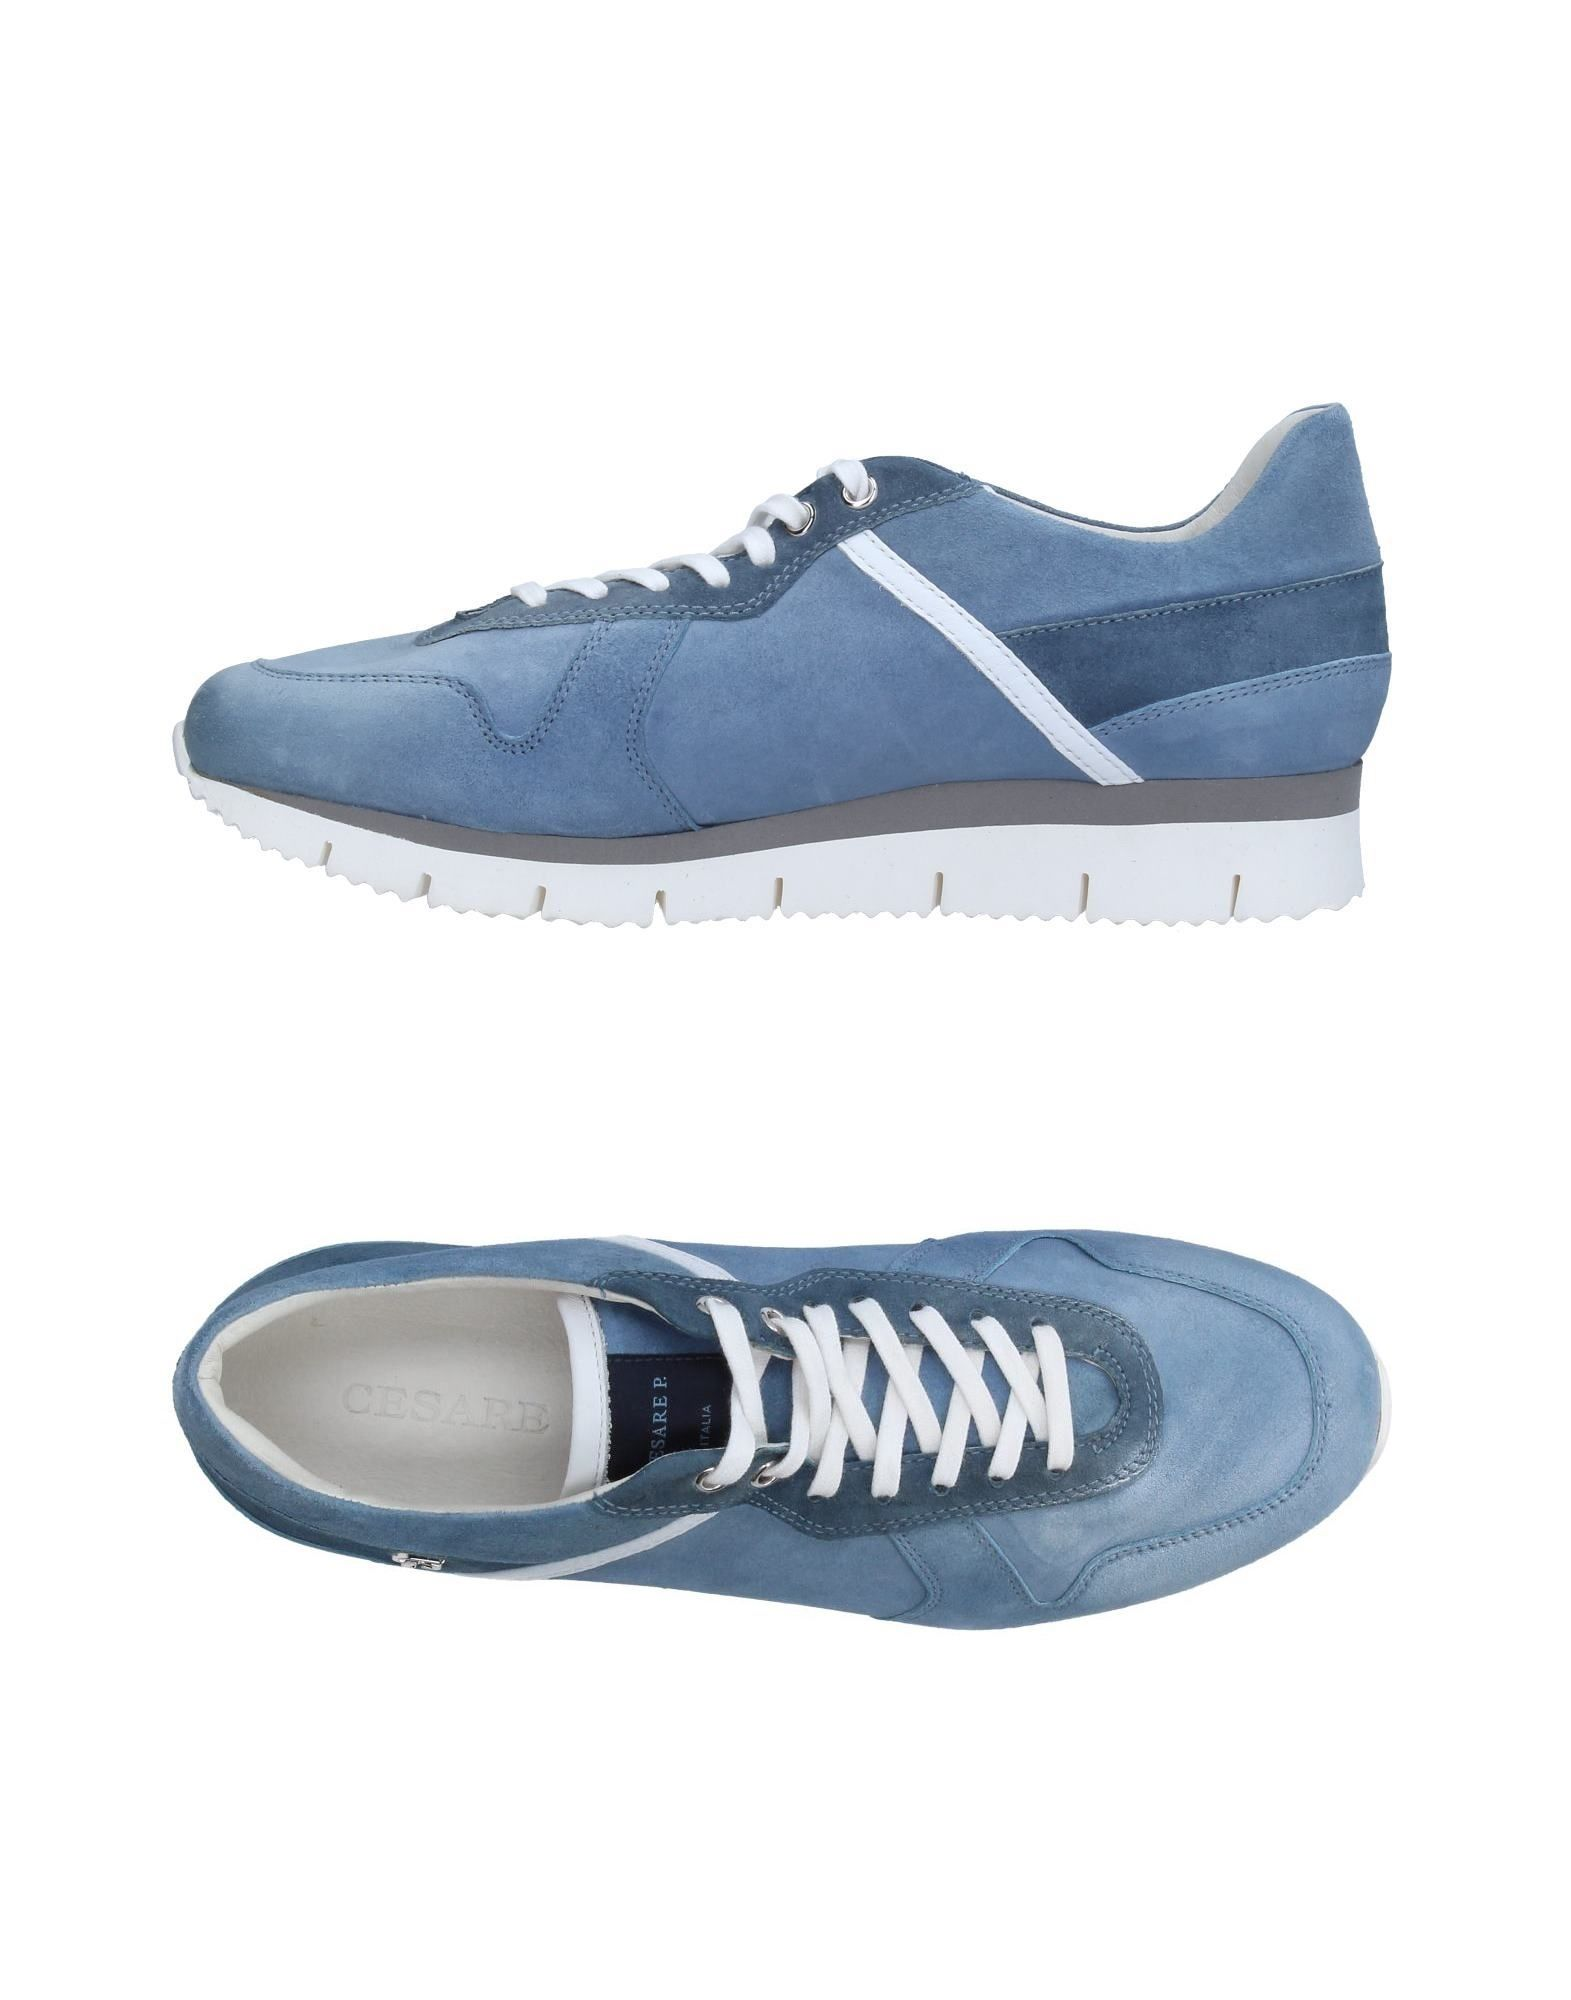 Cesare on P. Sneakers - Men Cesare P. Sneakers online on Cesare  Australia - 11276525IO 03b87f